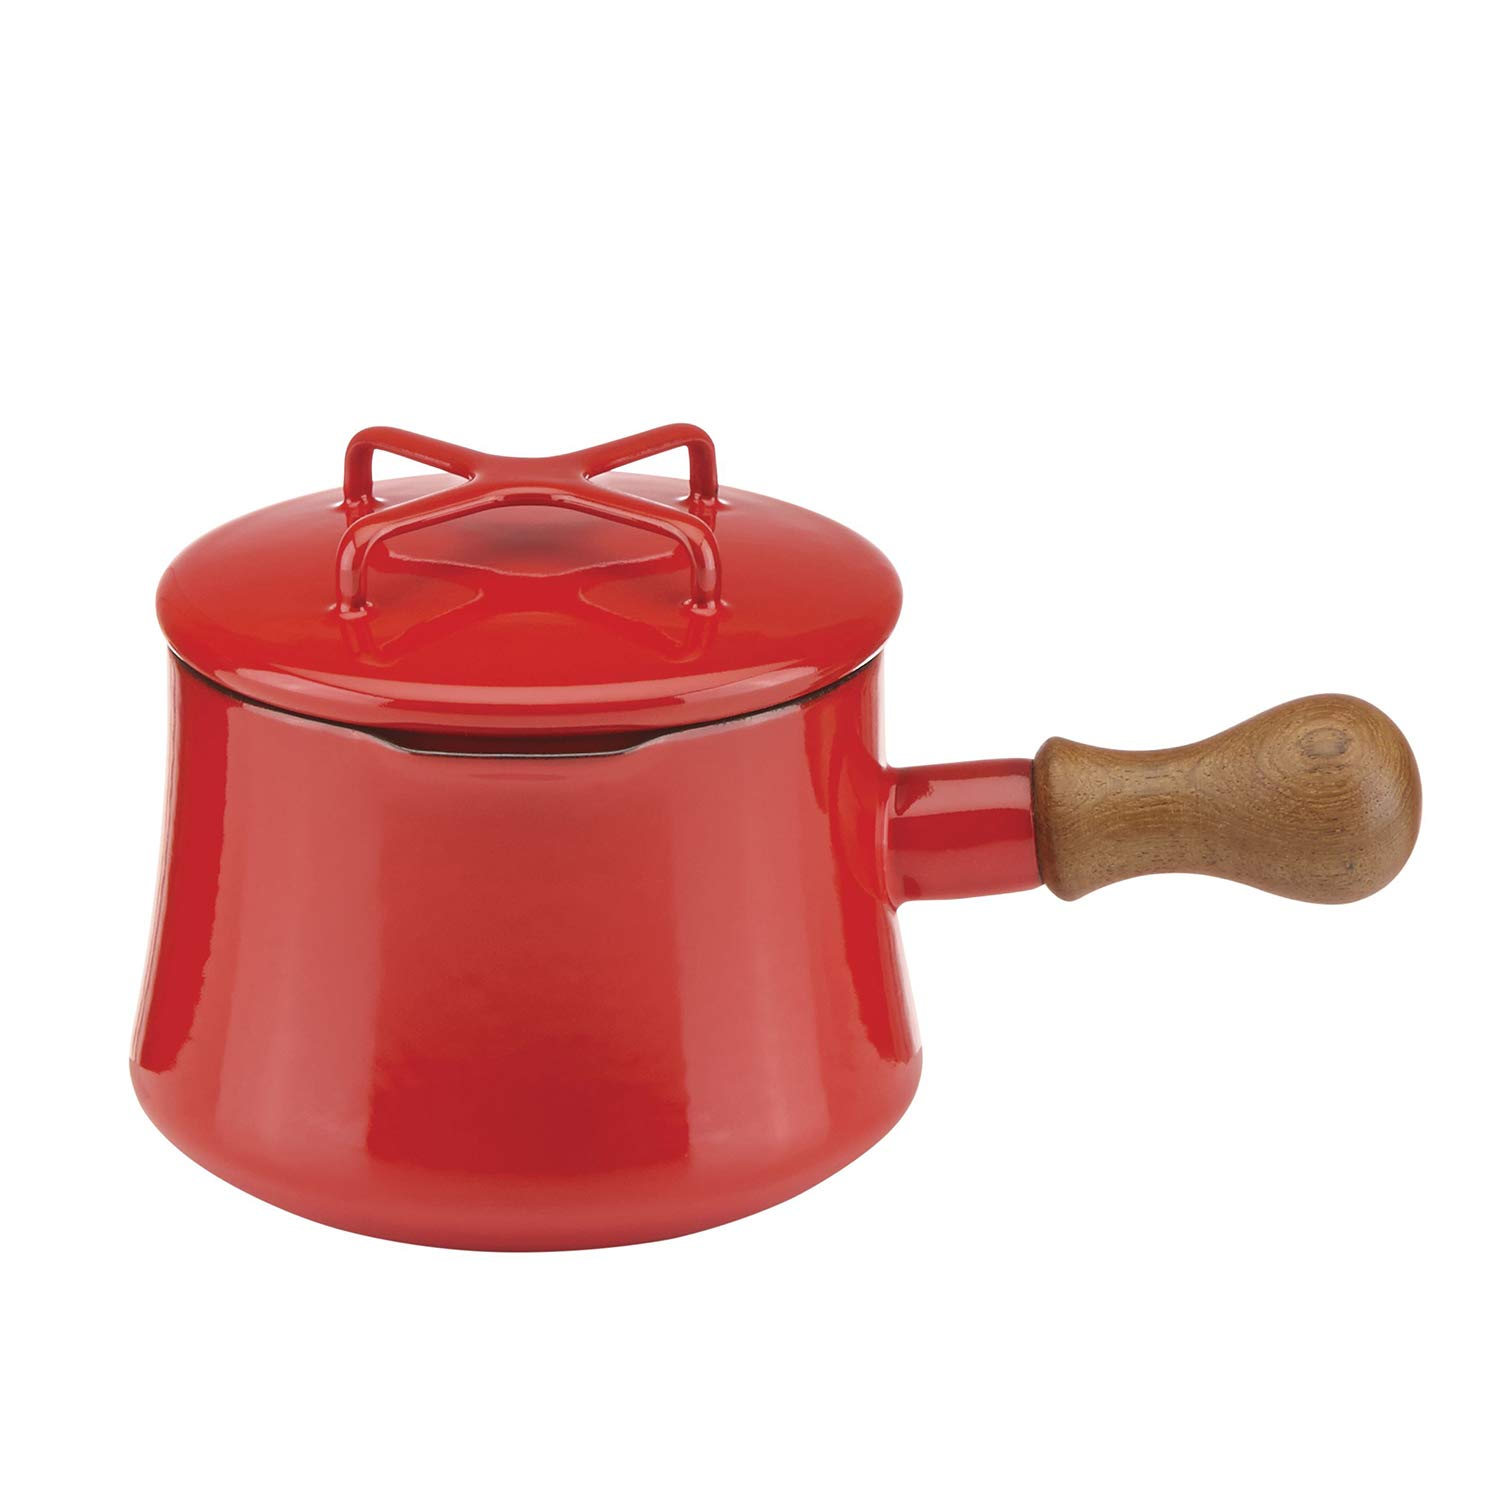 Dansk Kobenstyle Chili Red Cocoa Pot with Lid